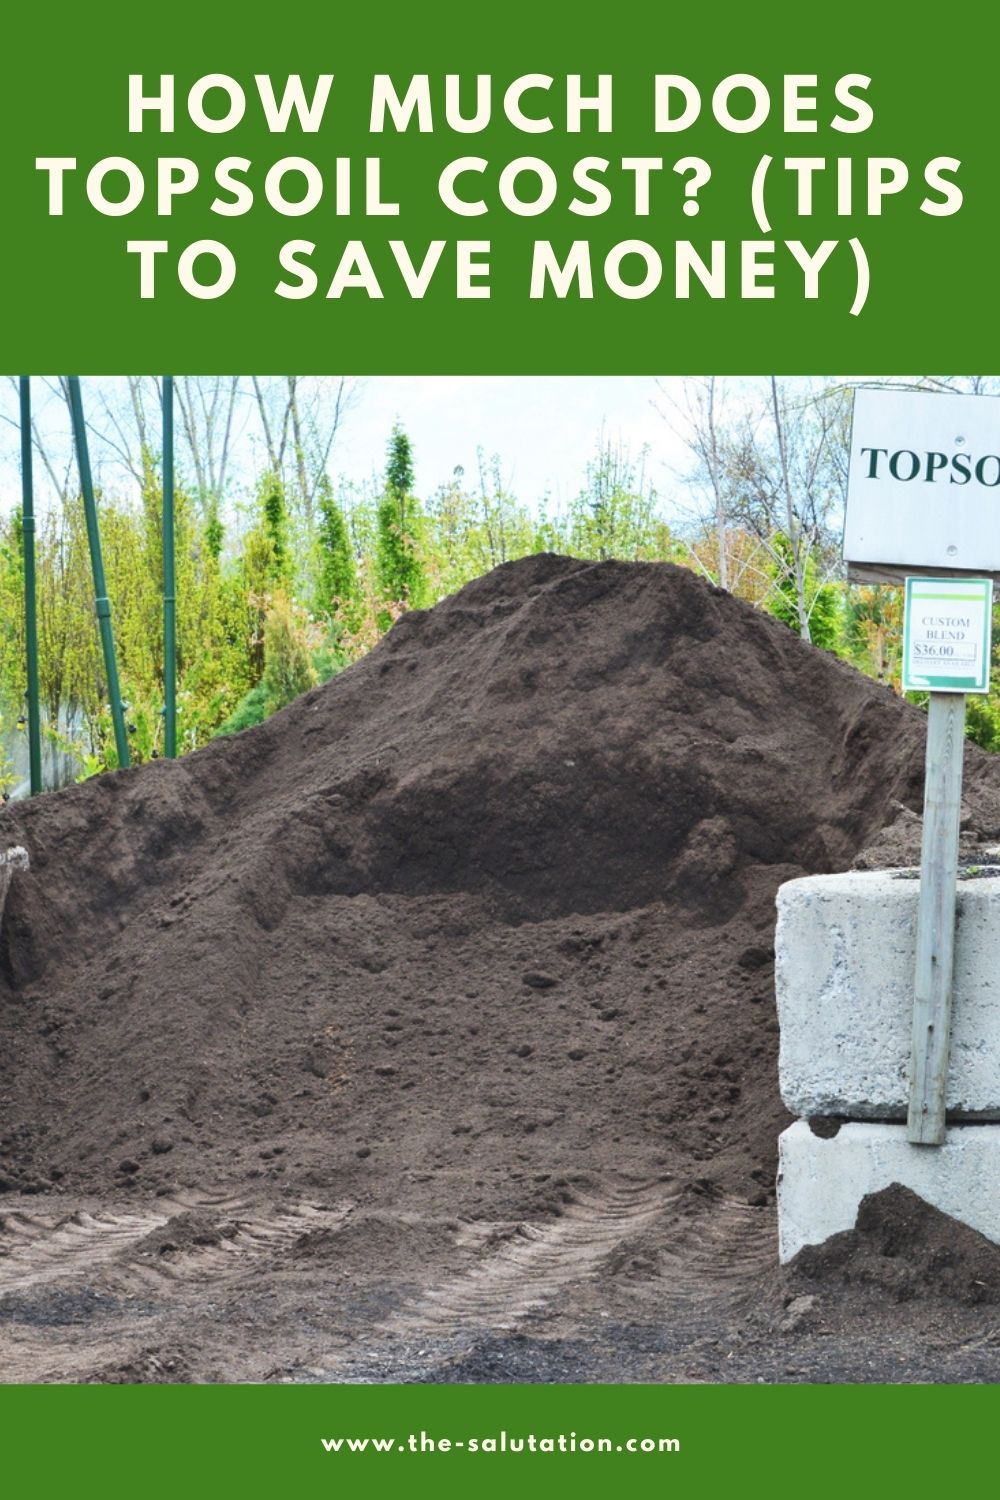 How Much Does Topsoil Cost (Tips to Save Money) 1